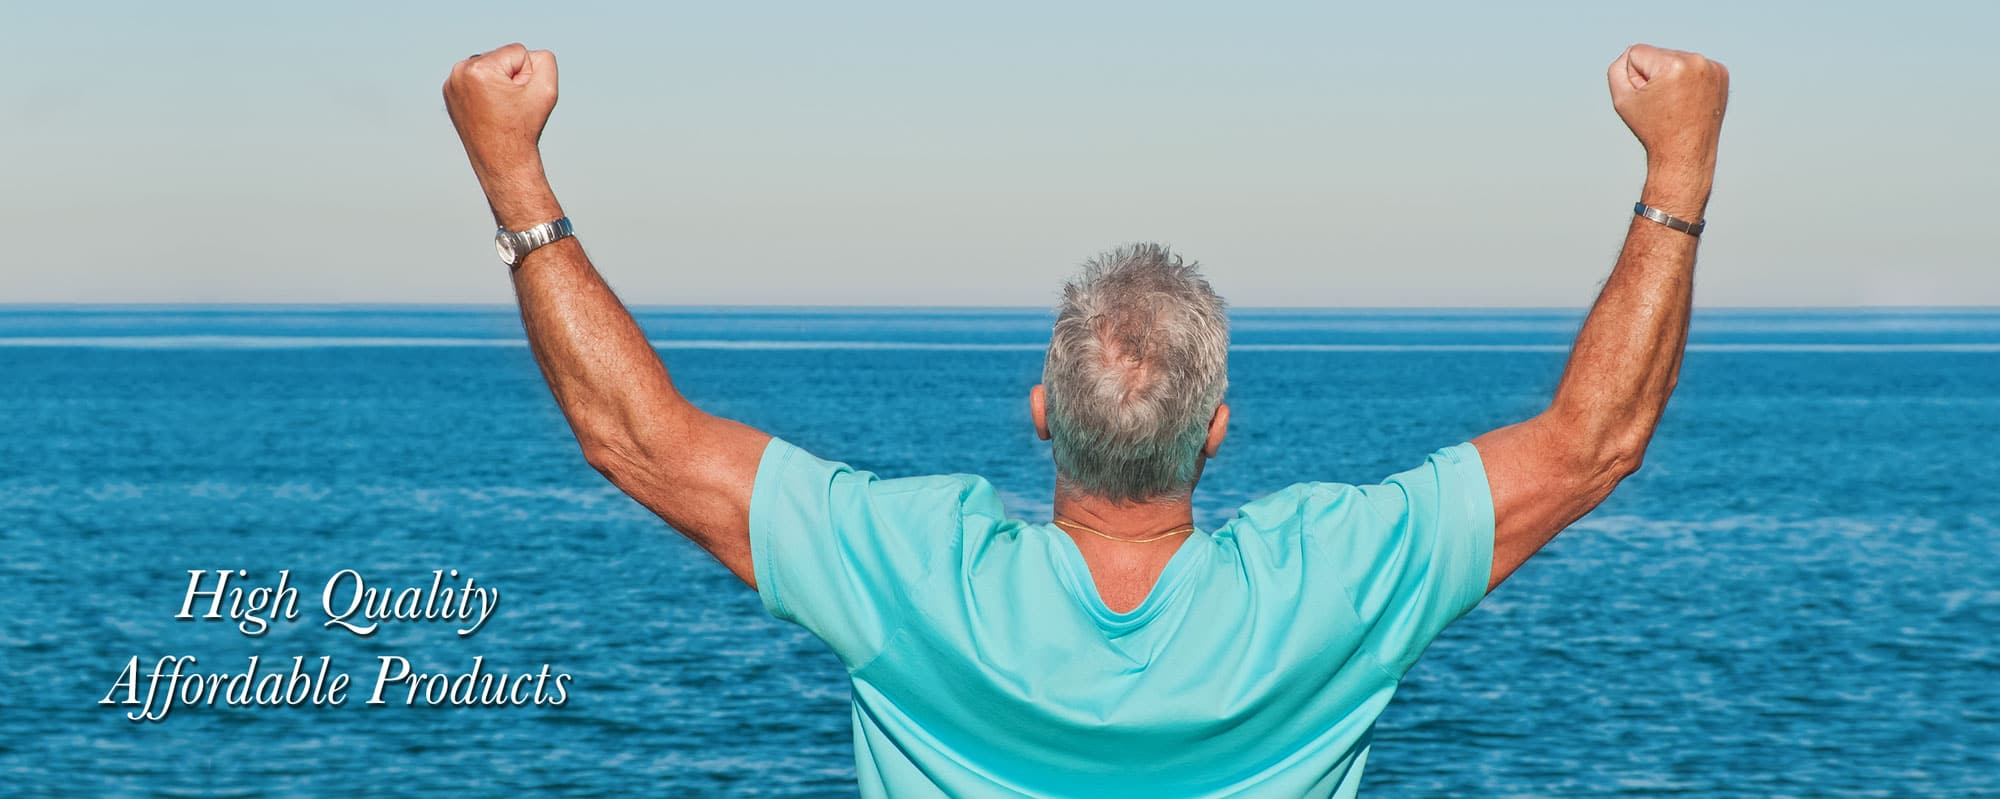 Man Looking at Ocean with his hands in fists in the air